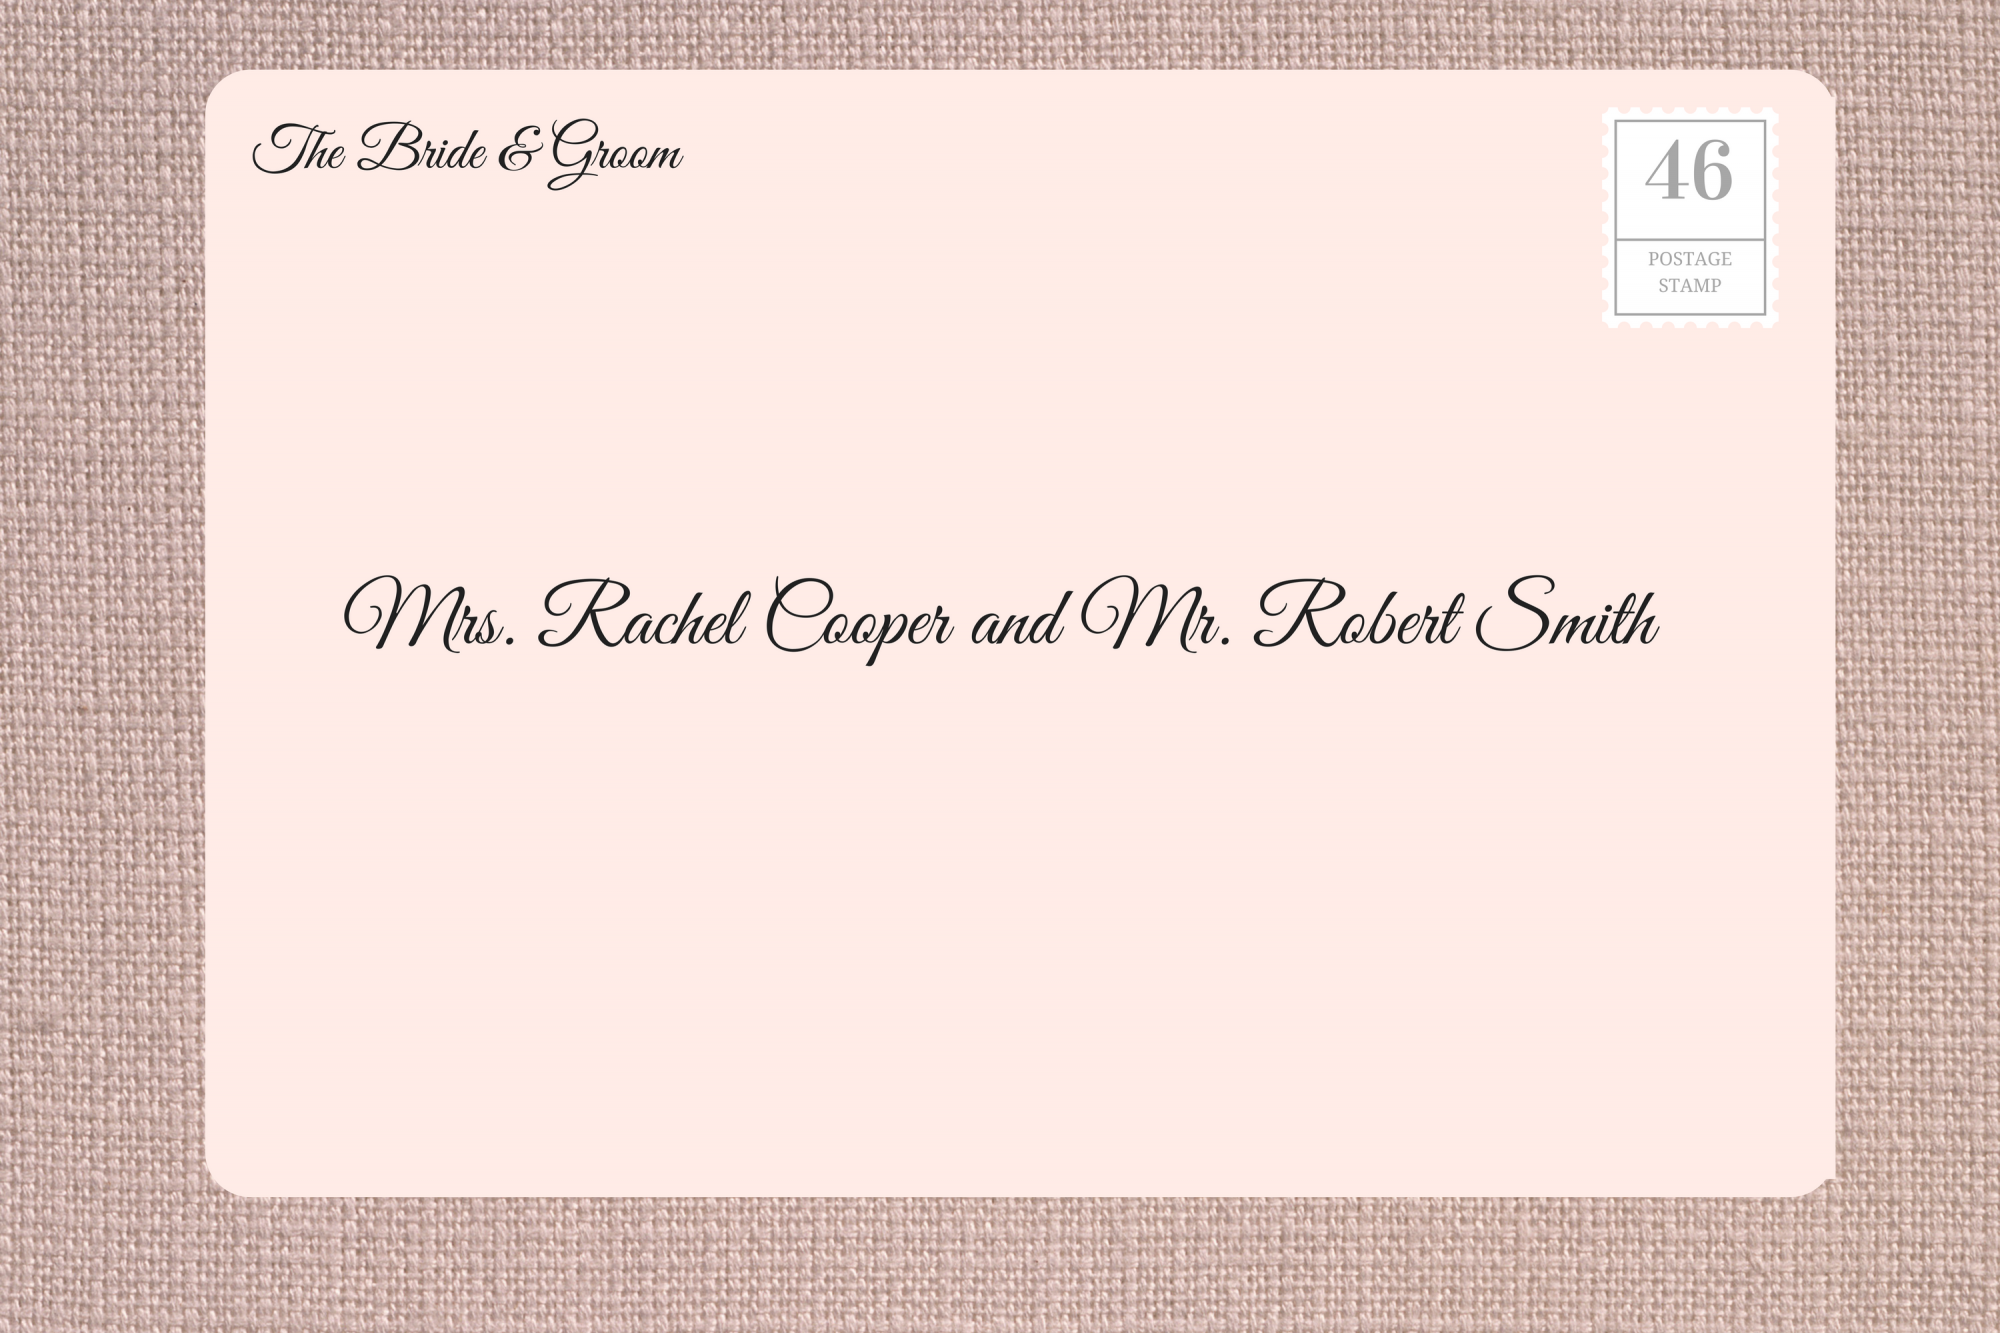 Addressing Wedding Invitations to Married Couple with Maiden Name